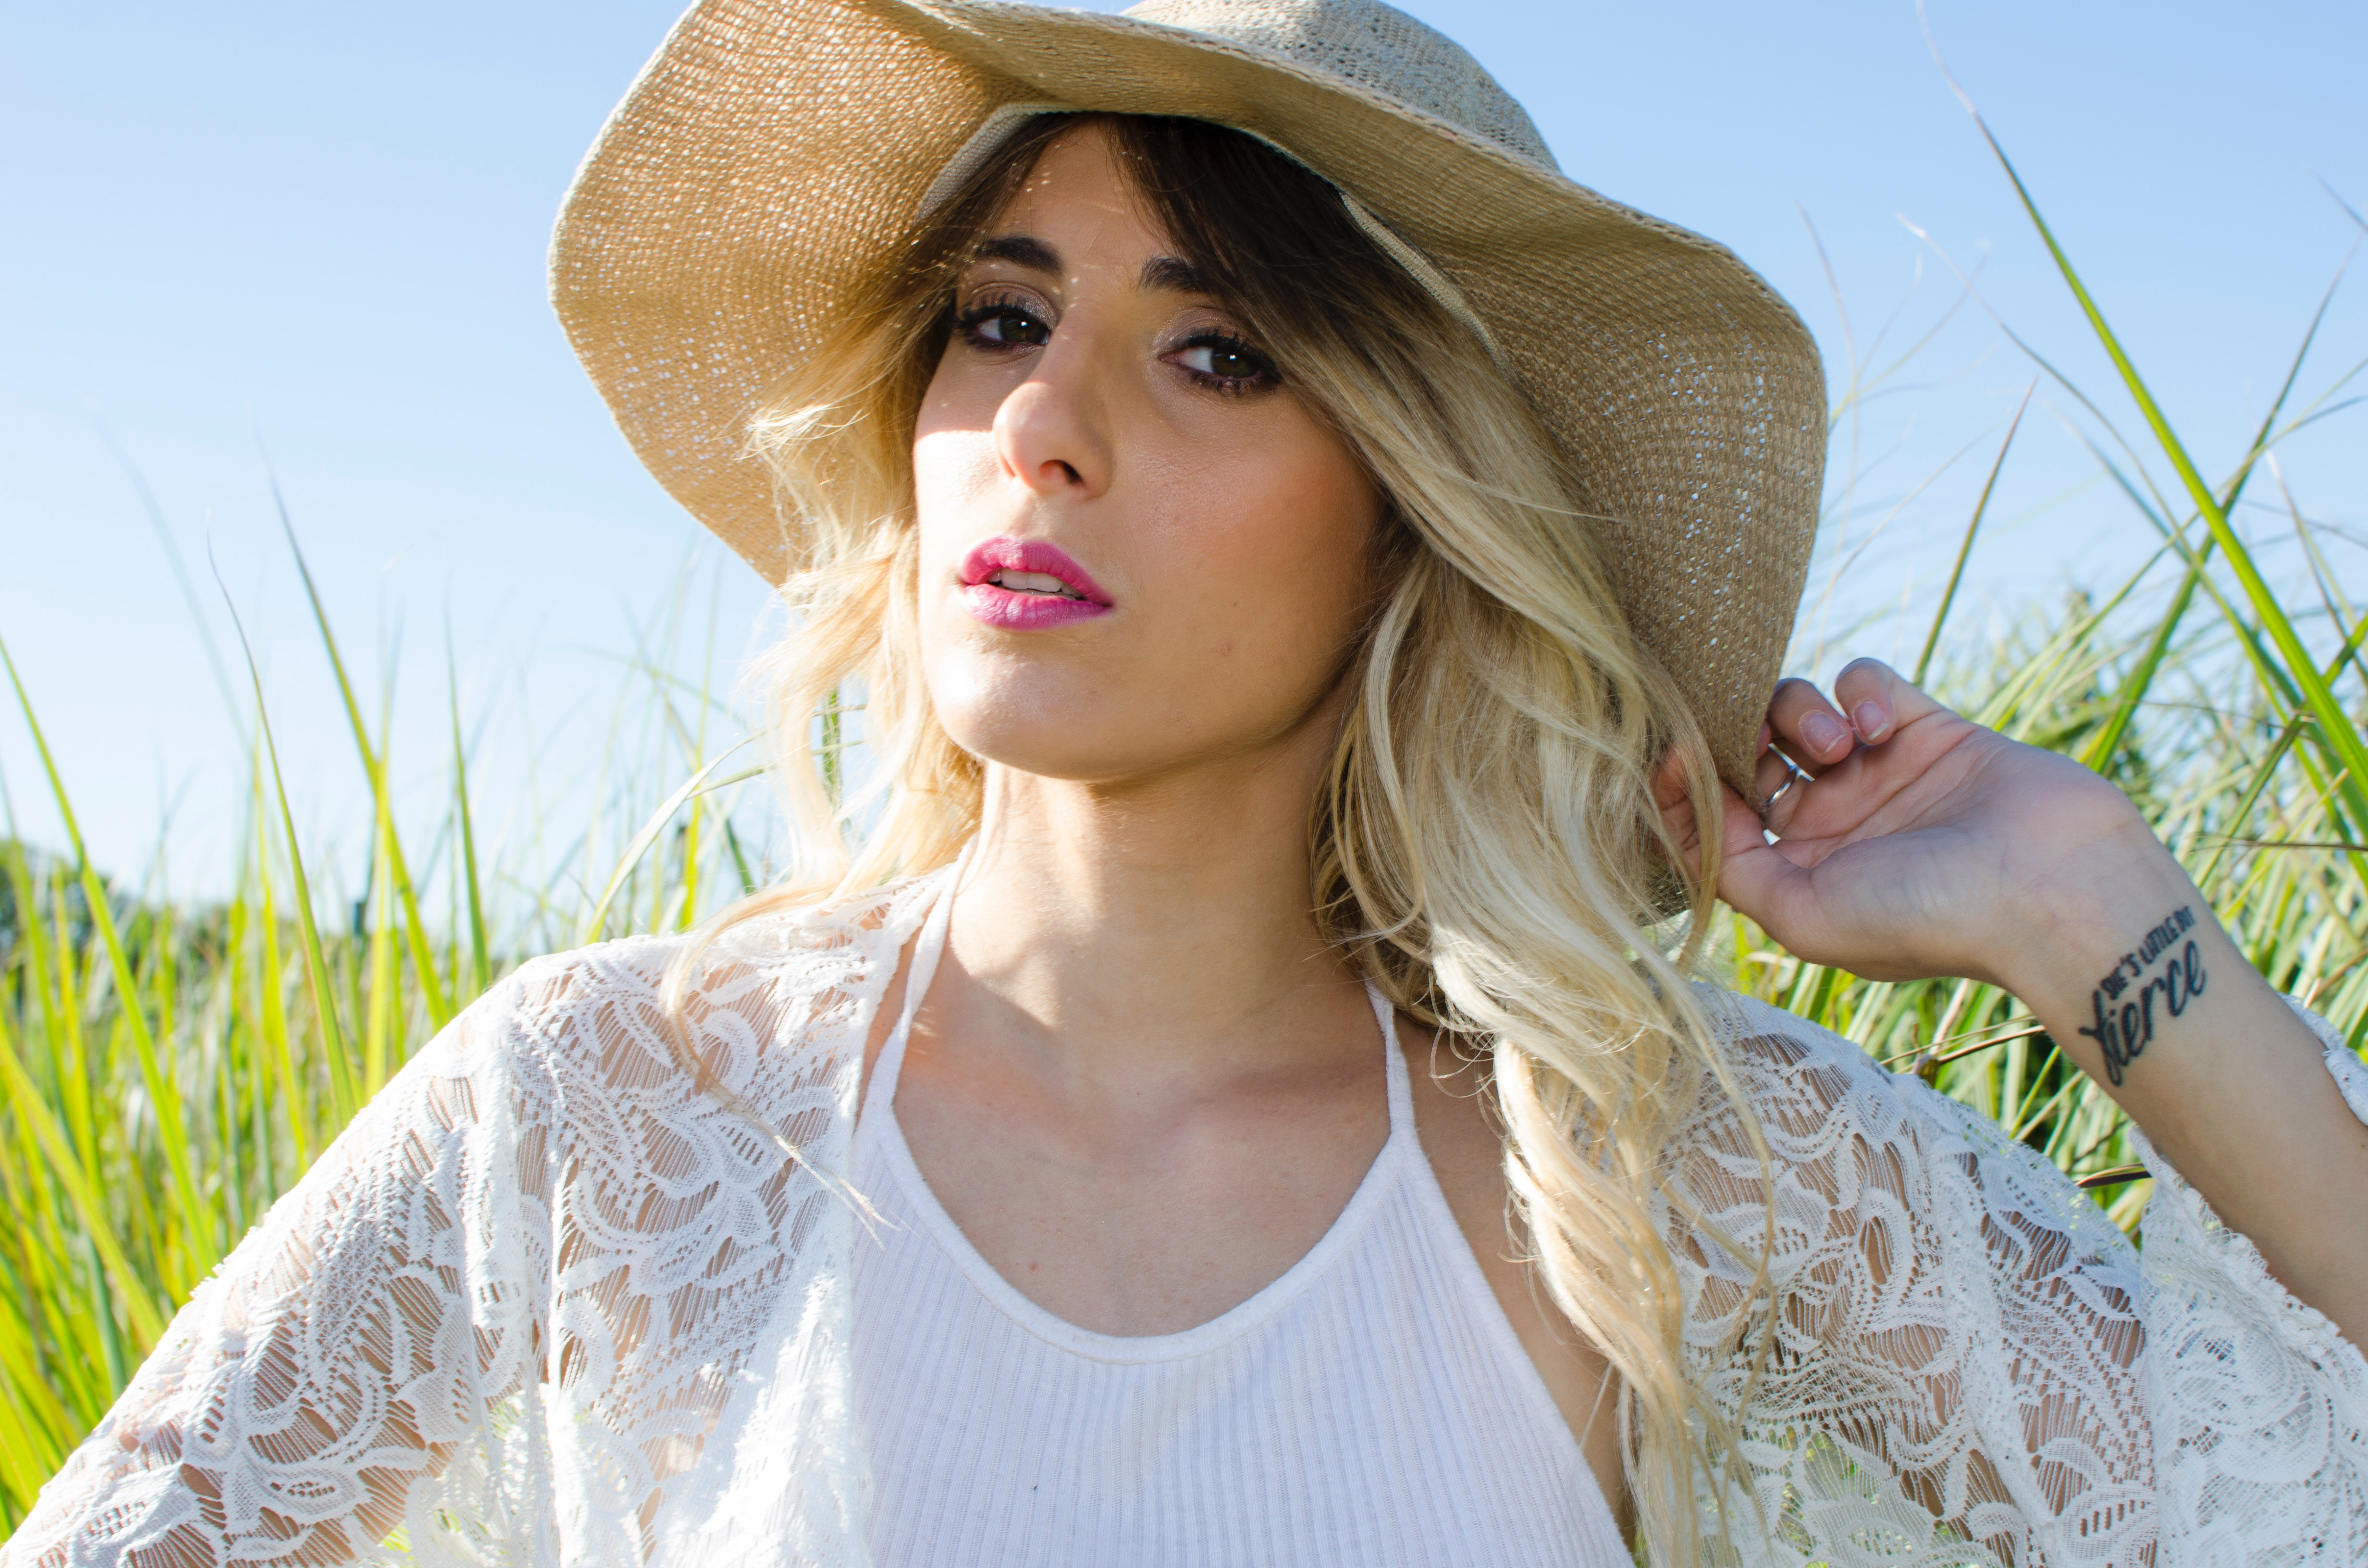 Woman Wearing Brown Hat and White Cardigan Standing in Middle of Grass Field, Attractive, Hat, Woman, Wear, HQ Photo